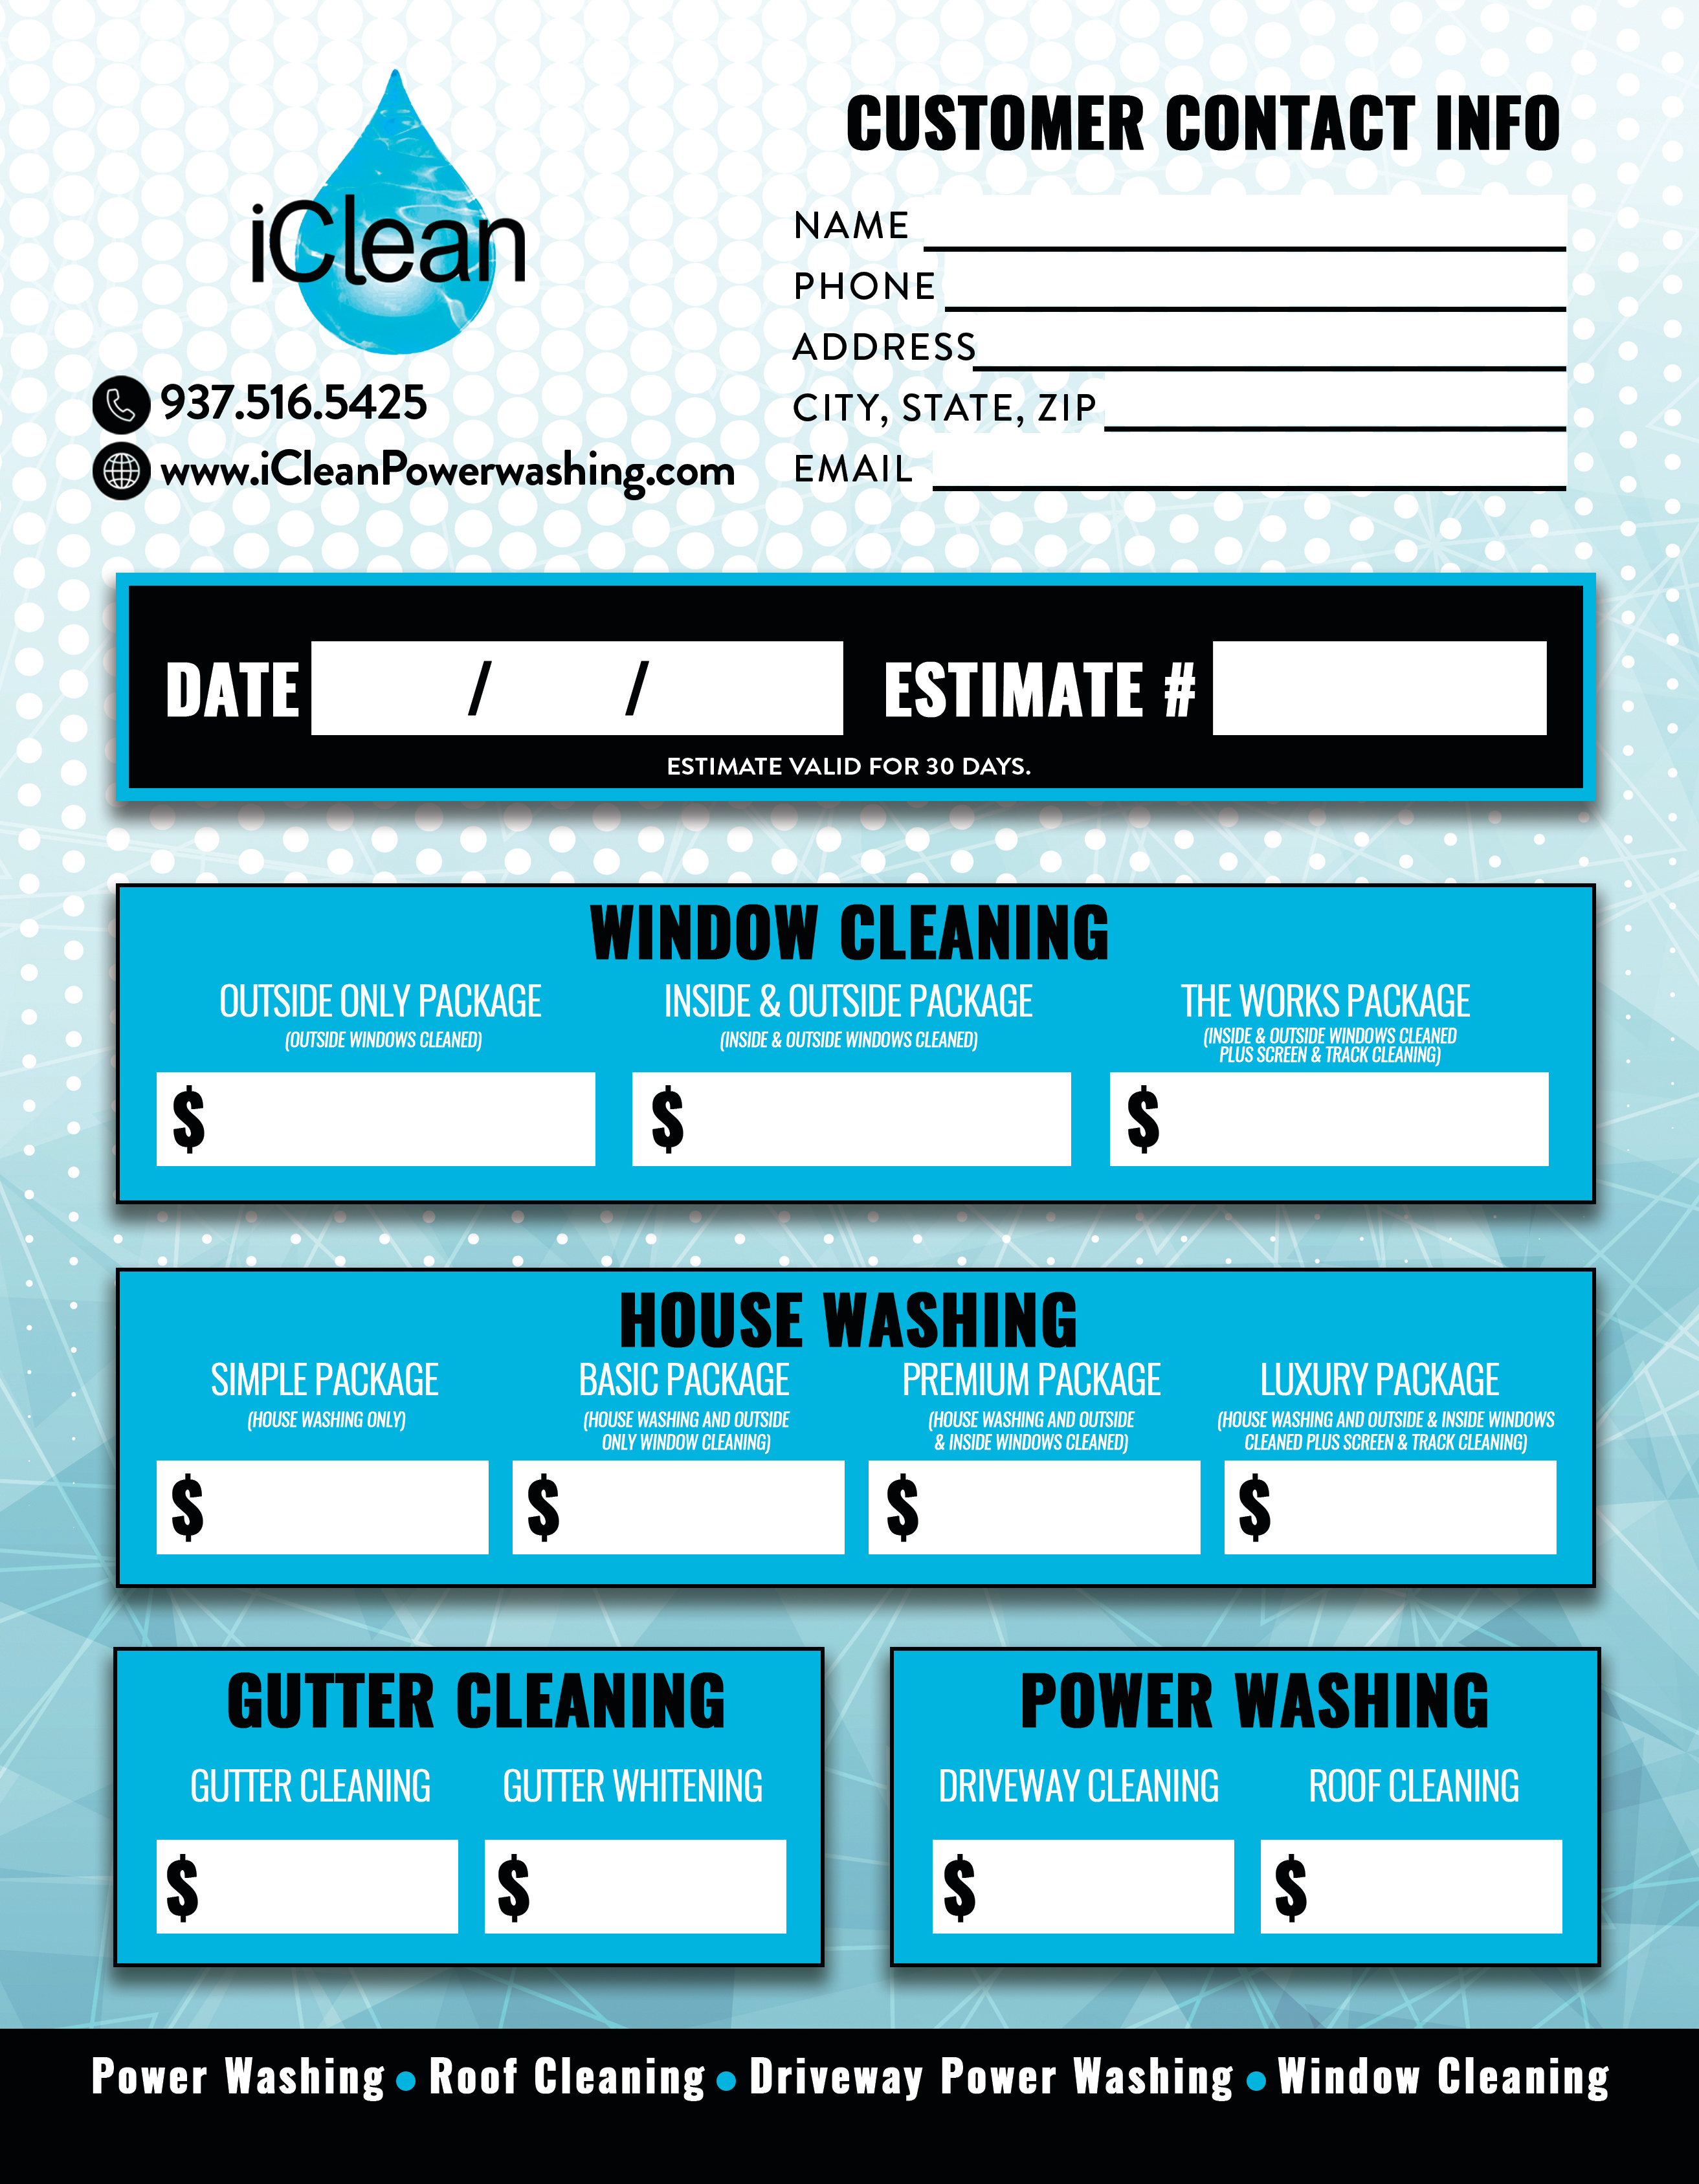 iClean_EstimateSheet_7-29-19_Front